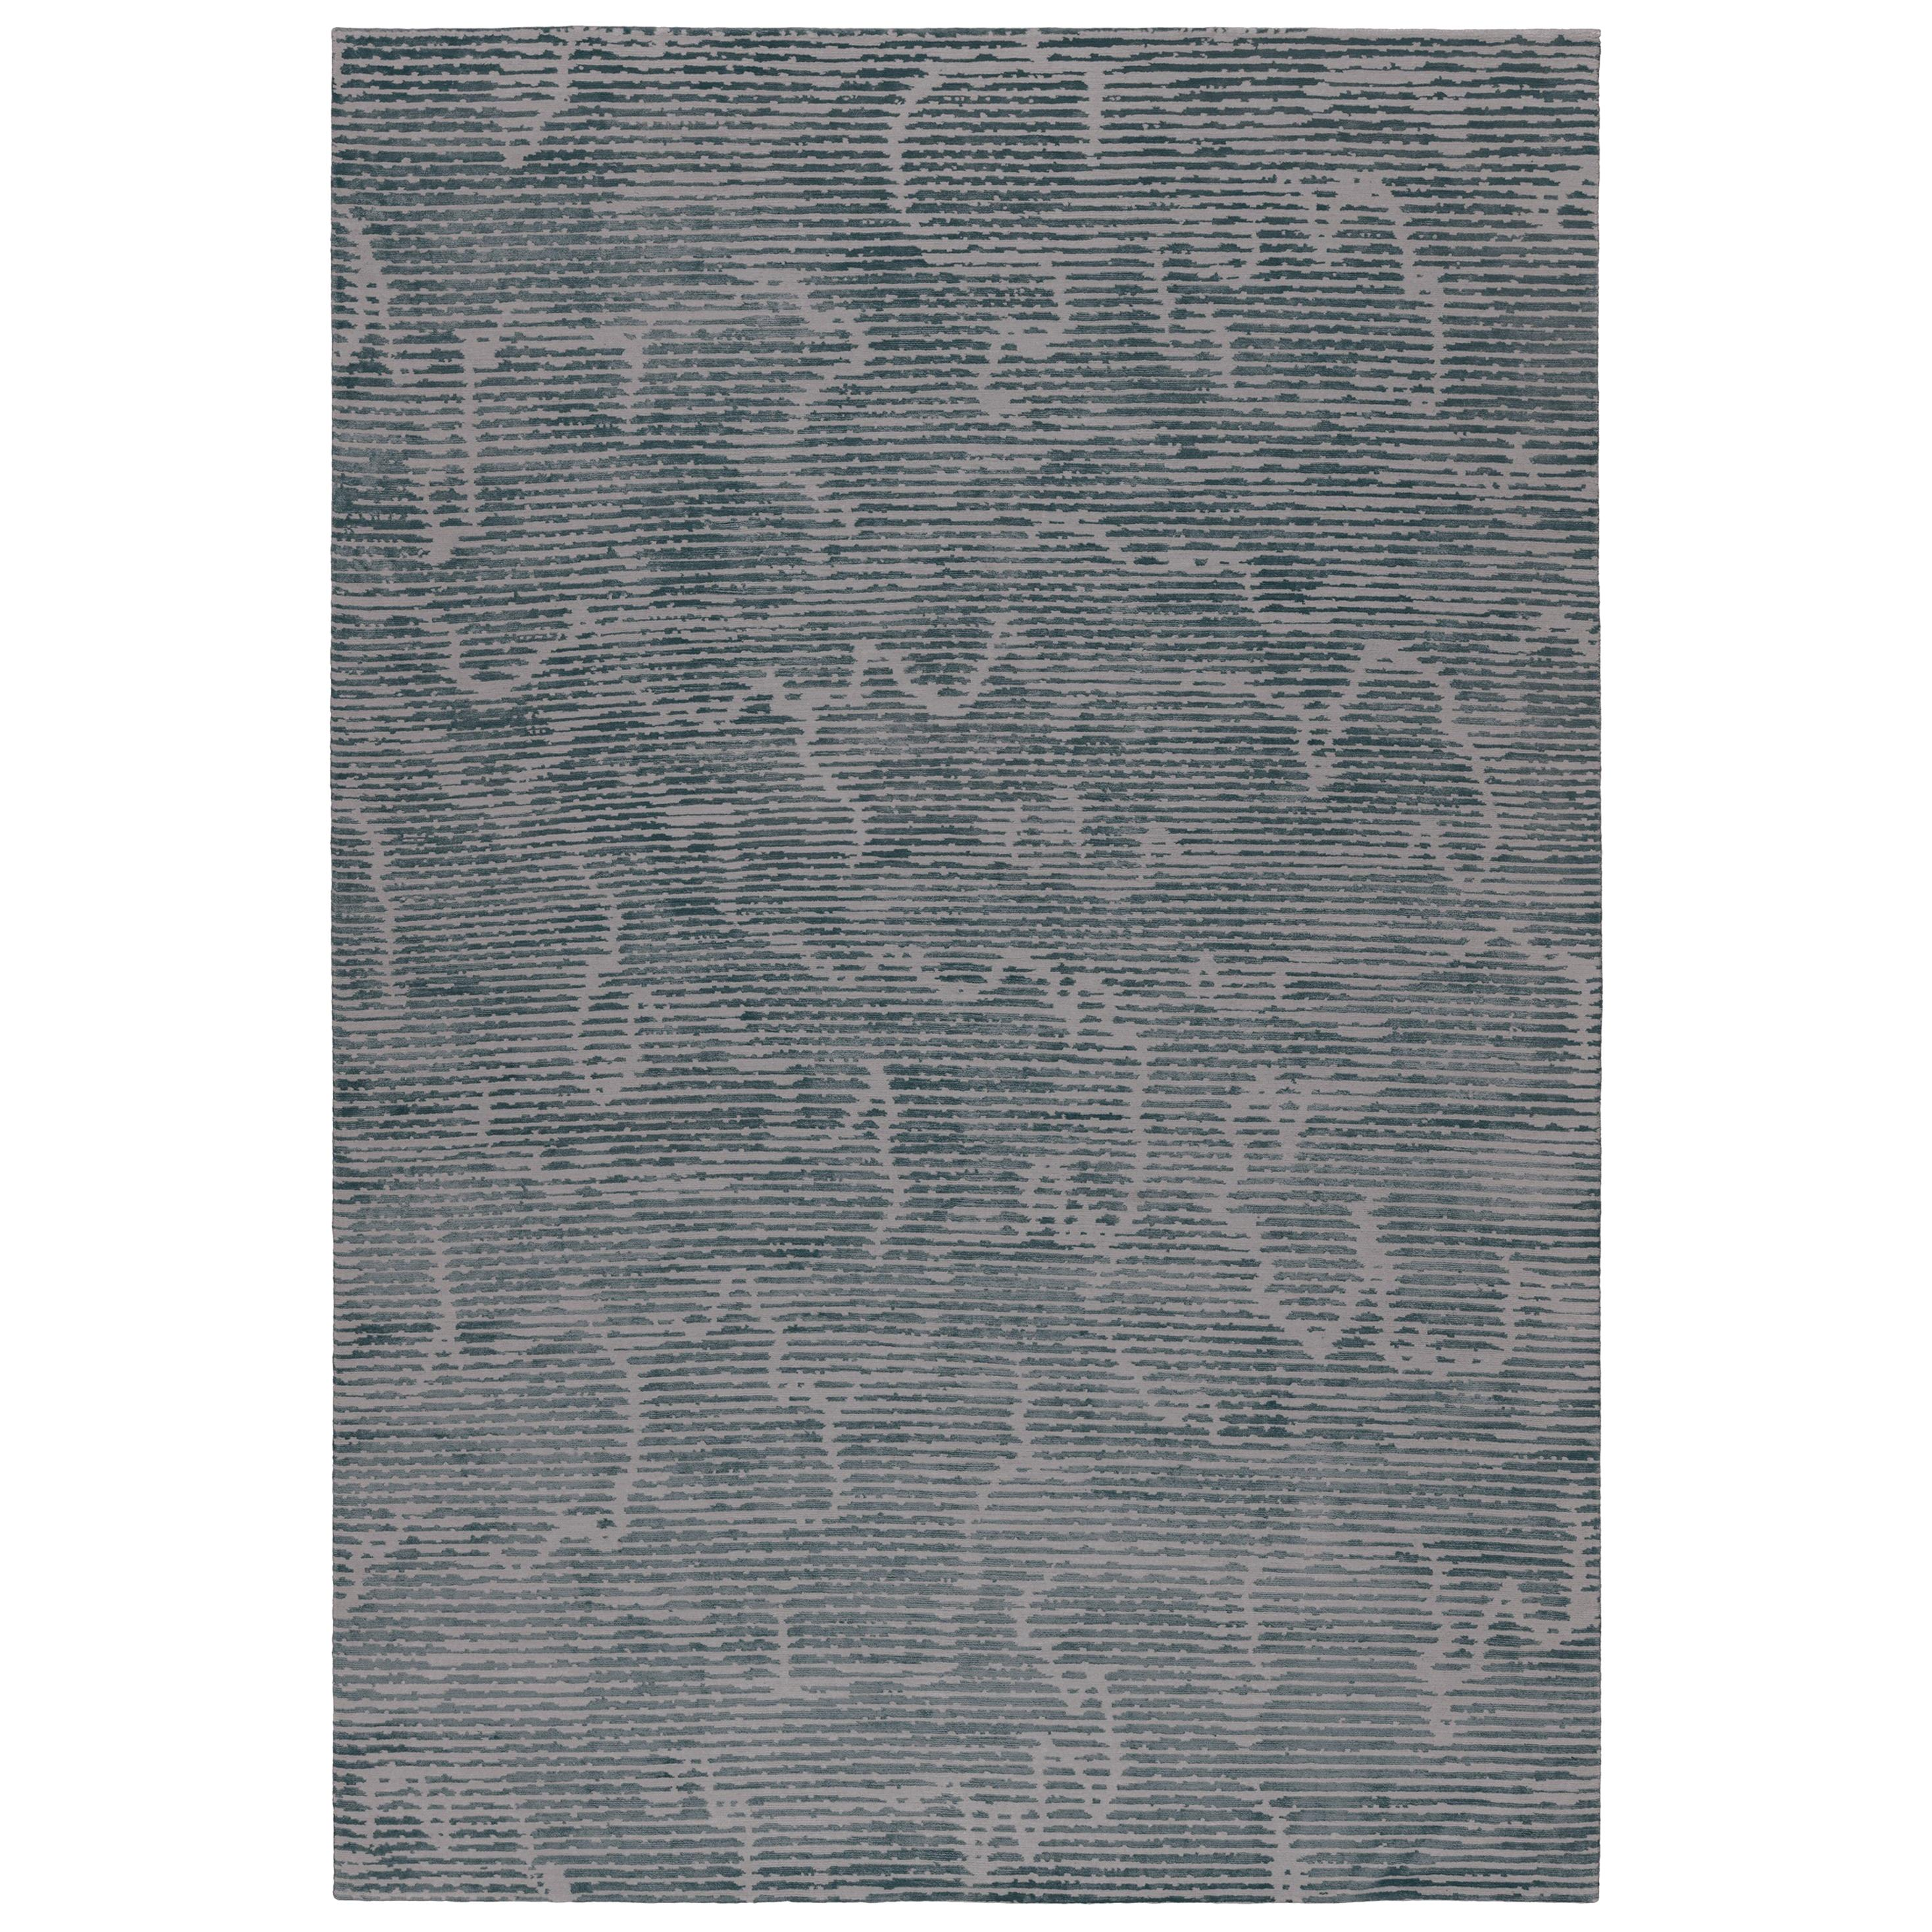 Staccato Steel Hand-Knotted 10x8 Rug in Wool and Silk by Kelly Wearstler